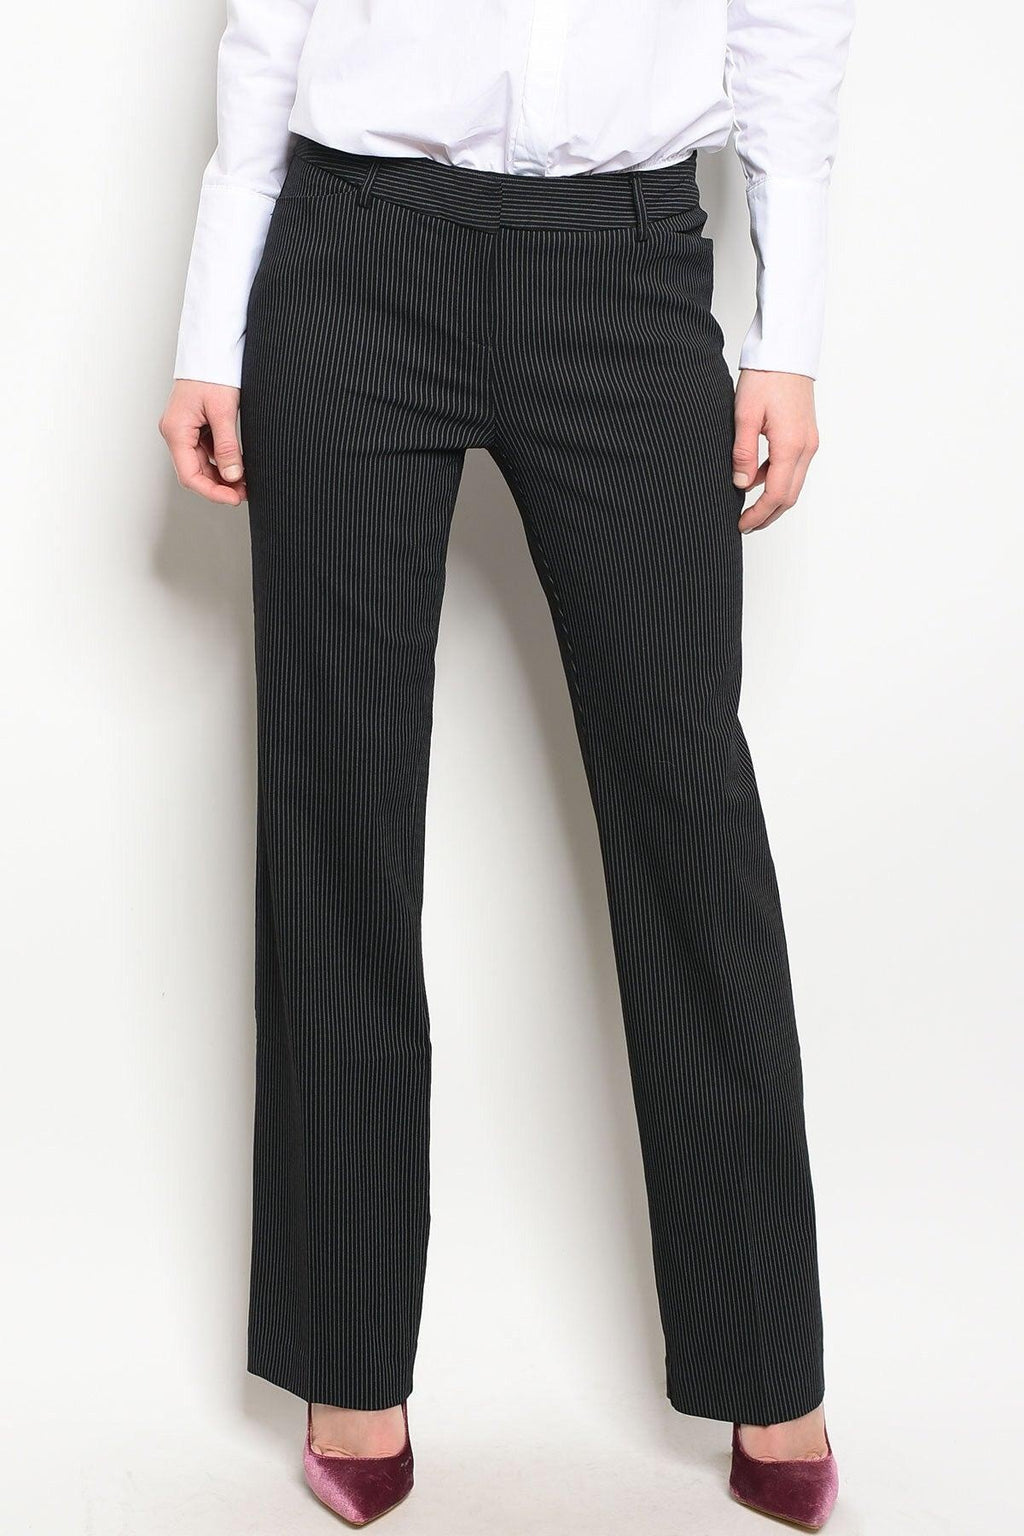 Pinstriped Black Slacks - My Royal Closet